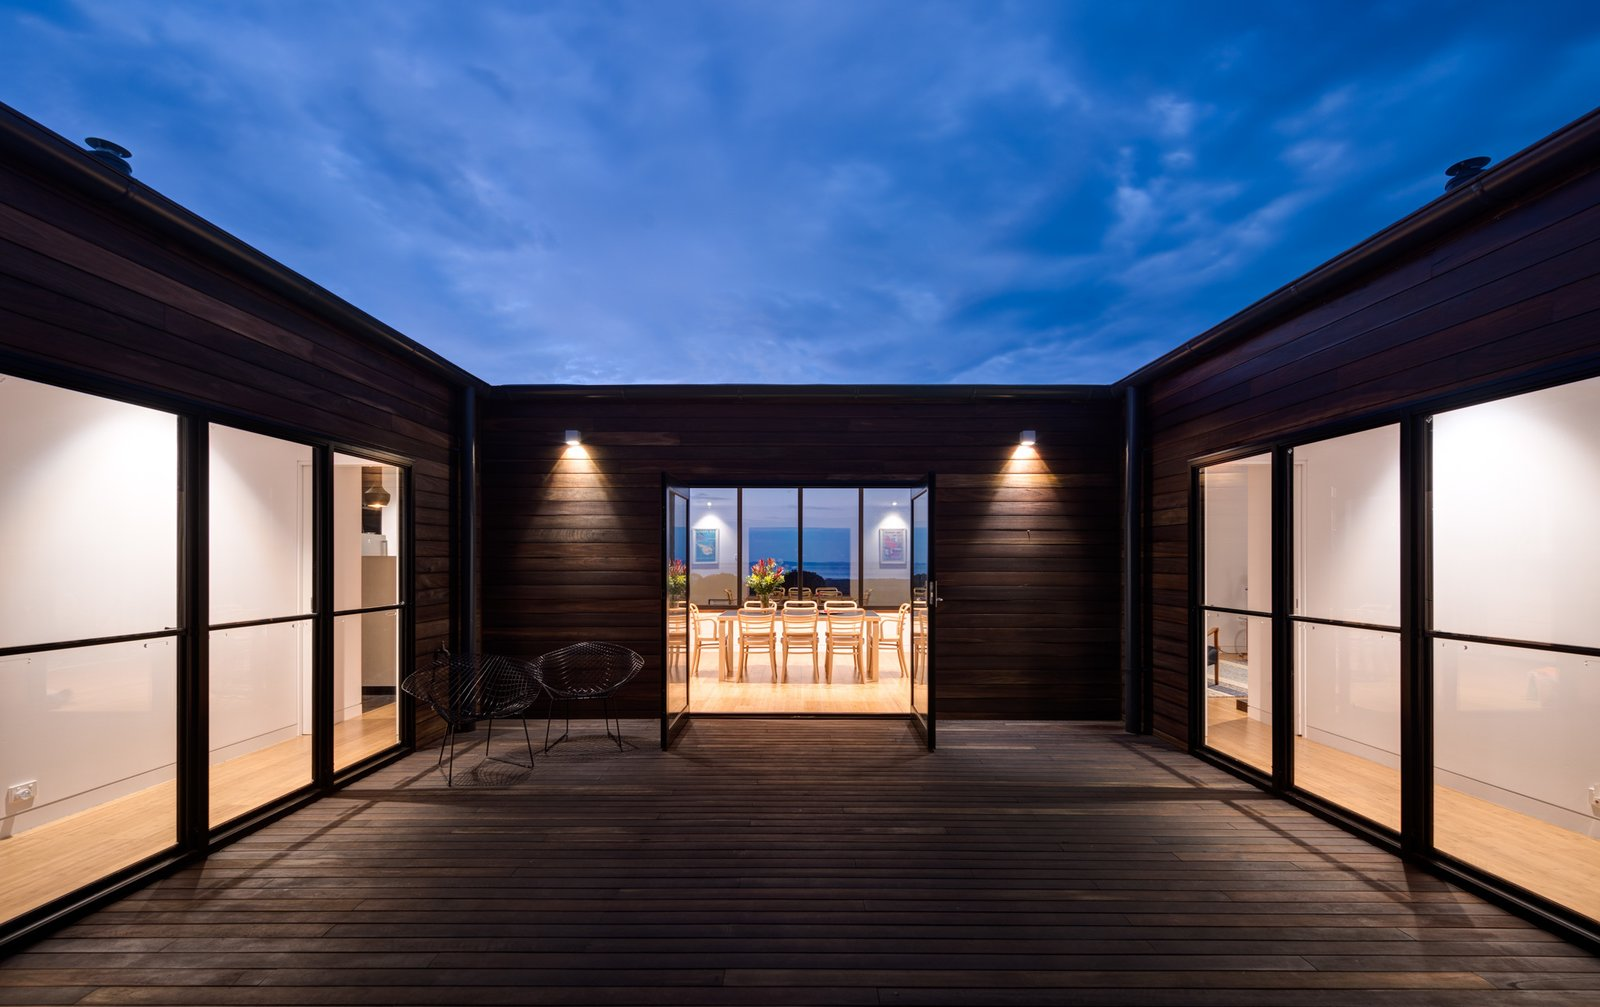 Outdoor, Back Yard, Large Patio, Porch, Deck, and Wood Patio, Porch, Deck A courtyard at the center of the home offers an outdoor space with protection from the harsh coastal winds.  16+ Prefab Homes in the Middle of Nowhere